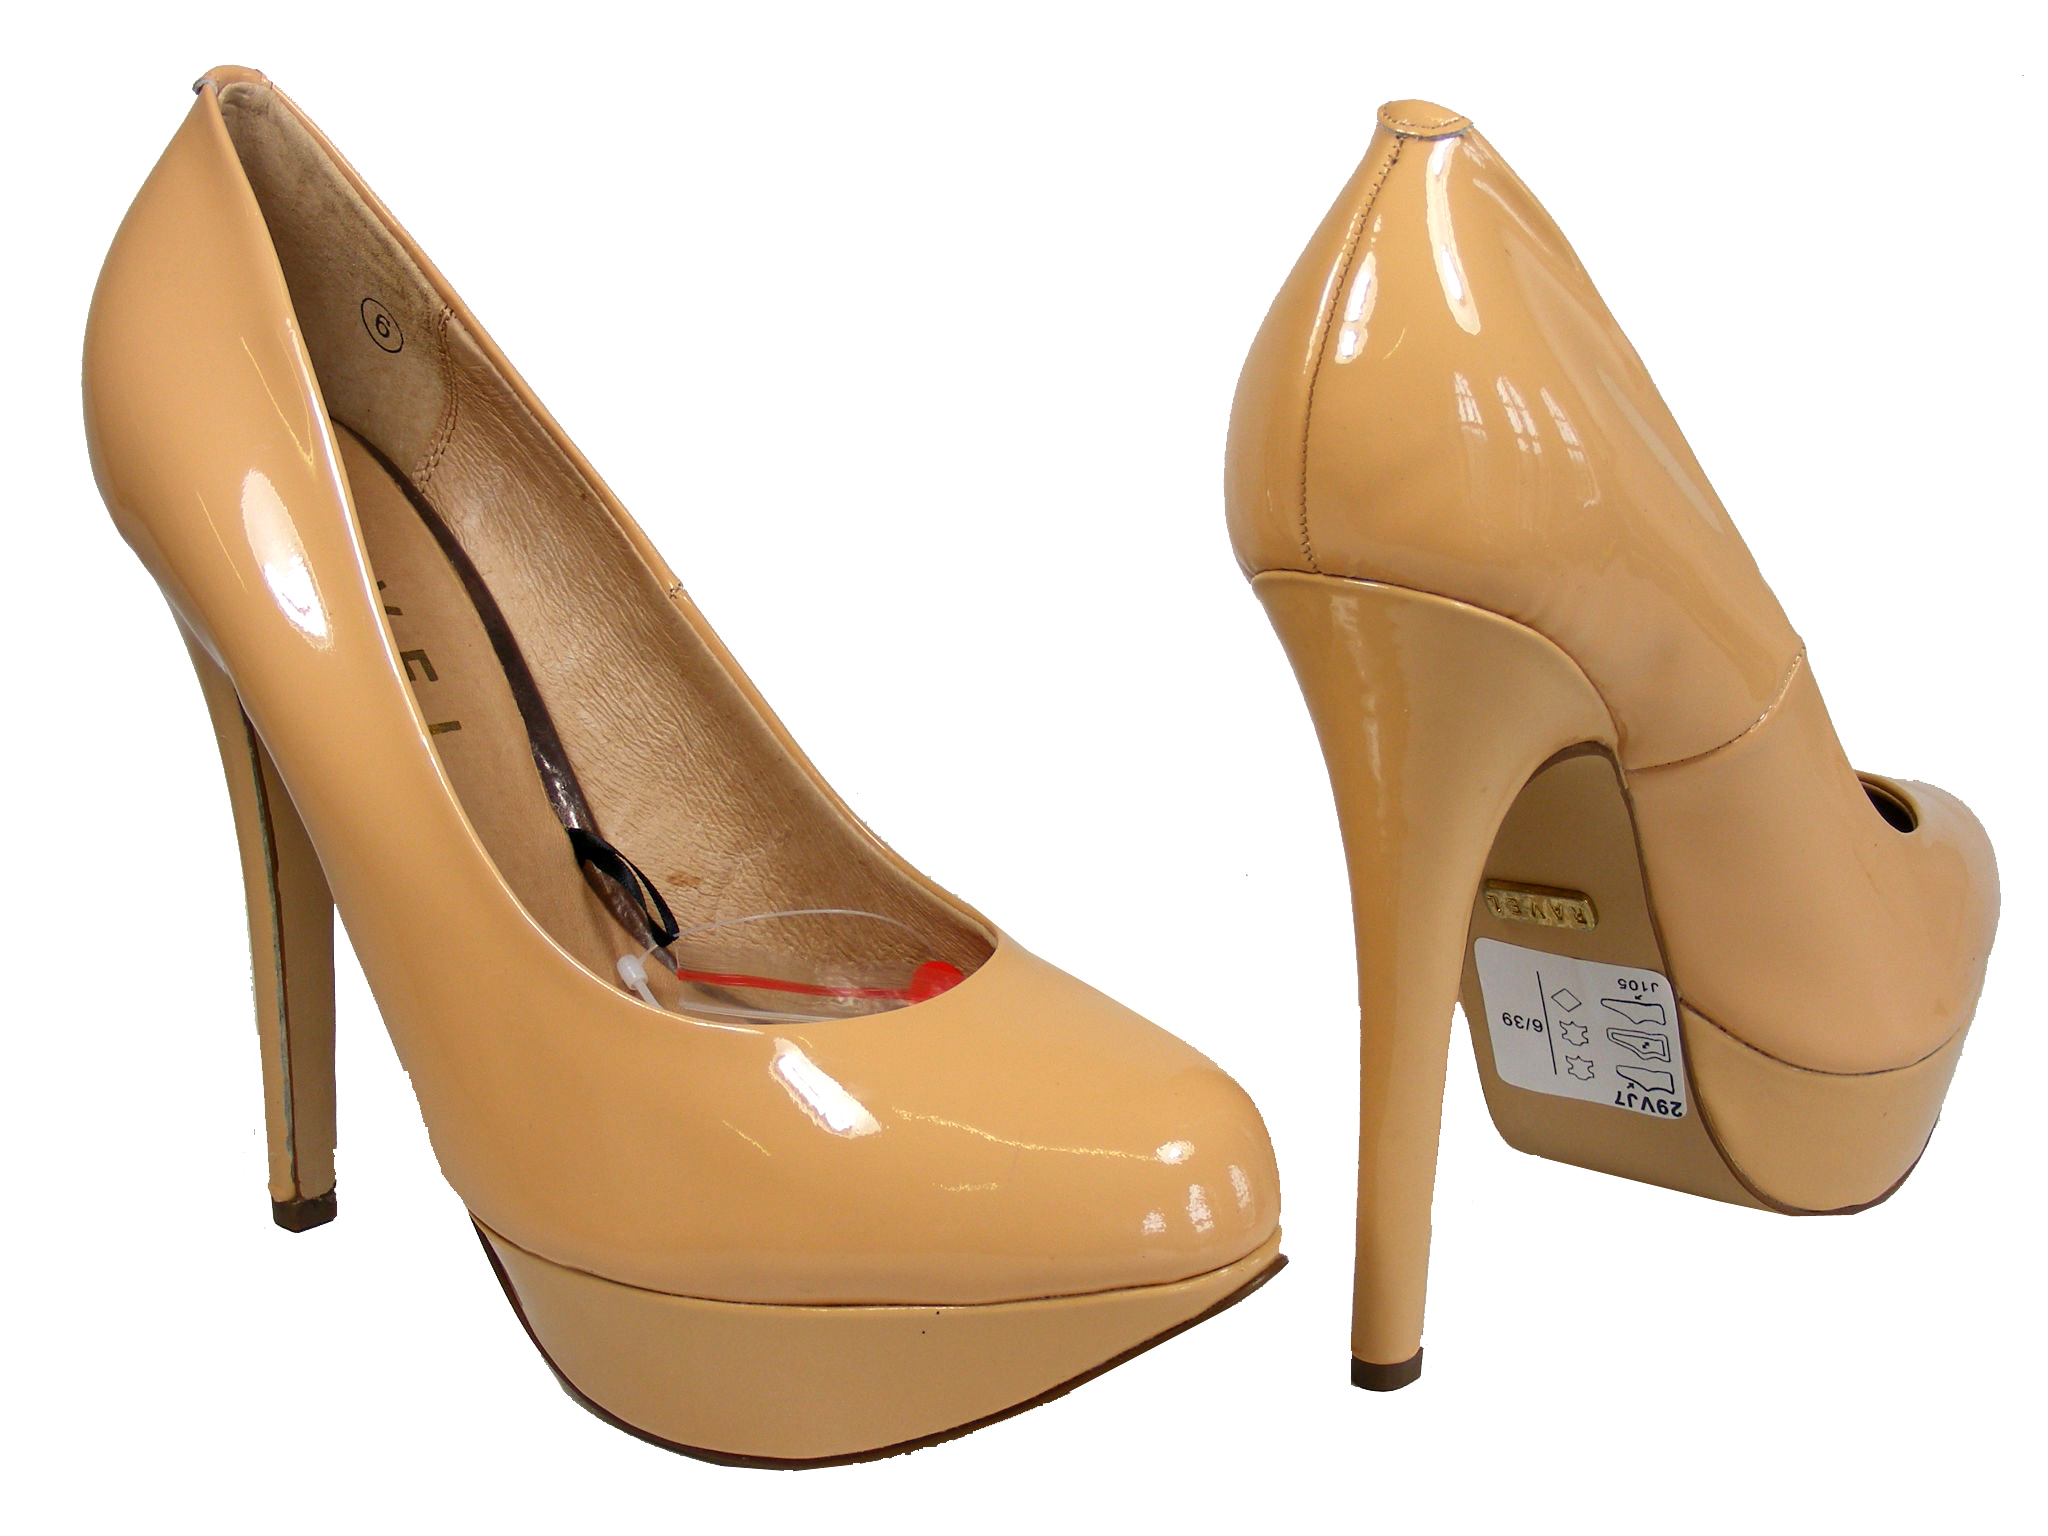 Cheap Gold High Heels For Women | Is Heel - Part 315